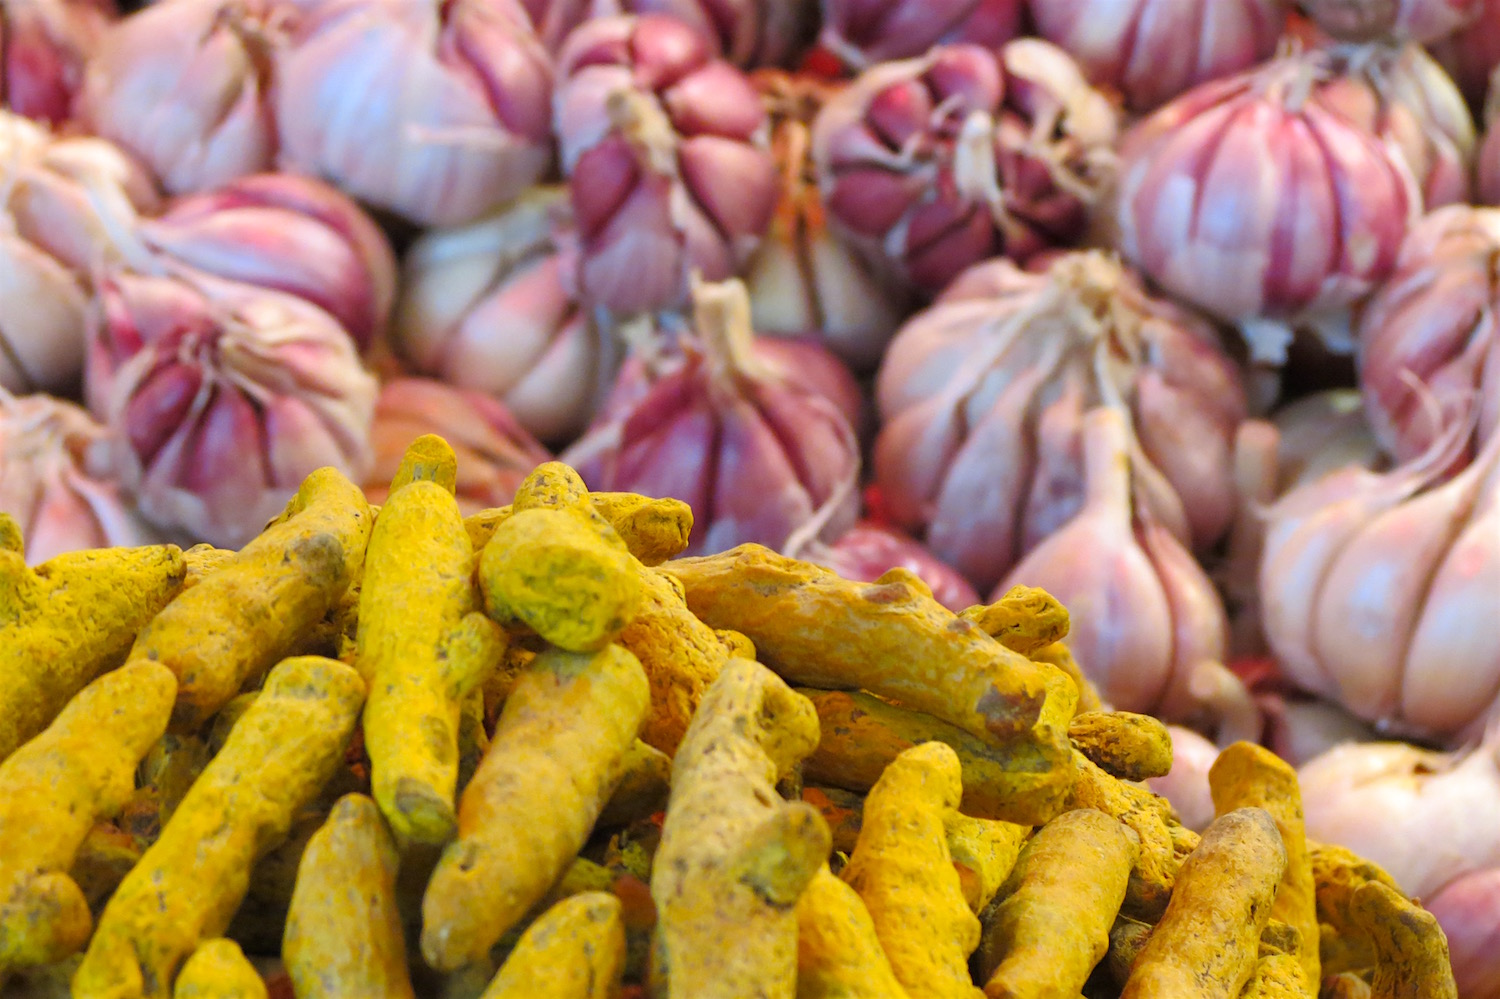 Rosy pink garlic and vivid yellow turmeric in Casablanca's Habous Market